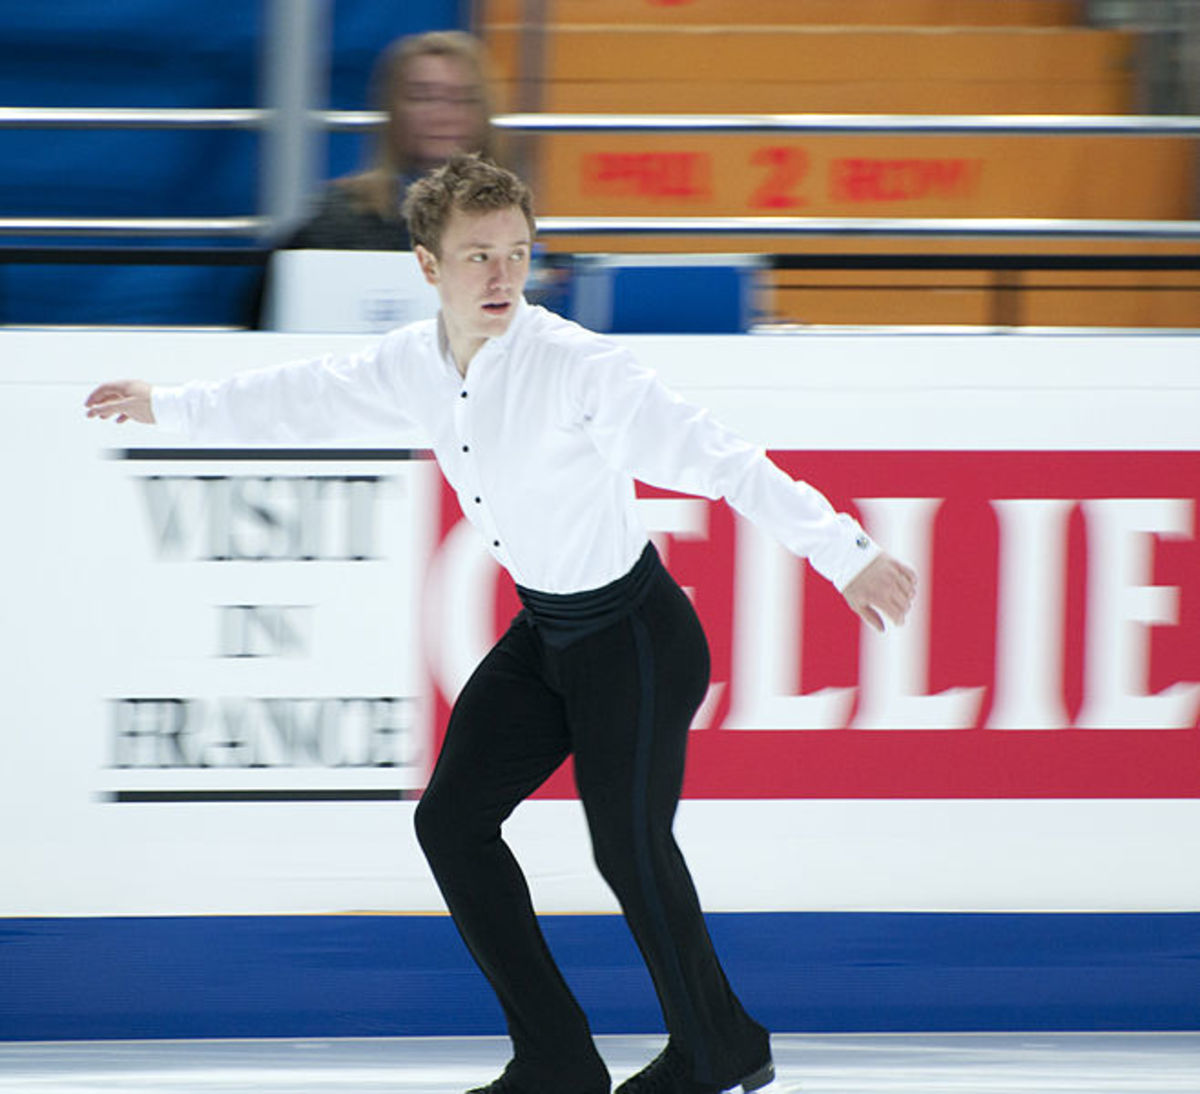 A skater using backwards crossovers prior to a jump.